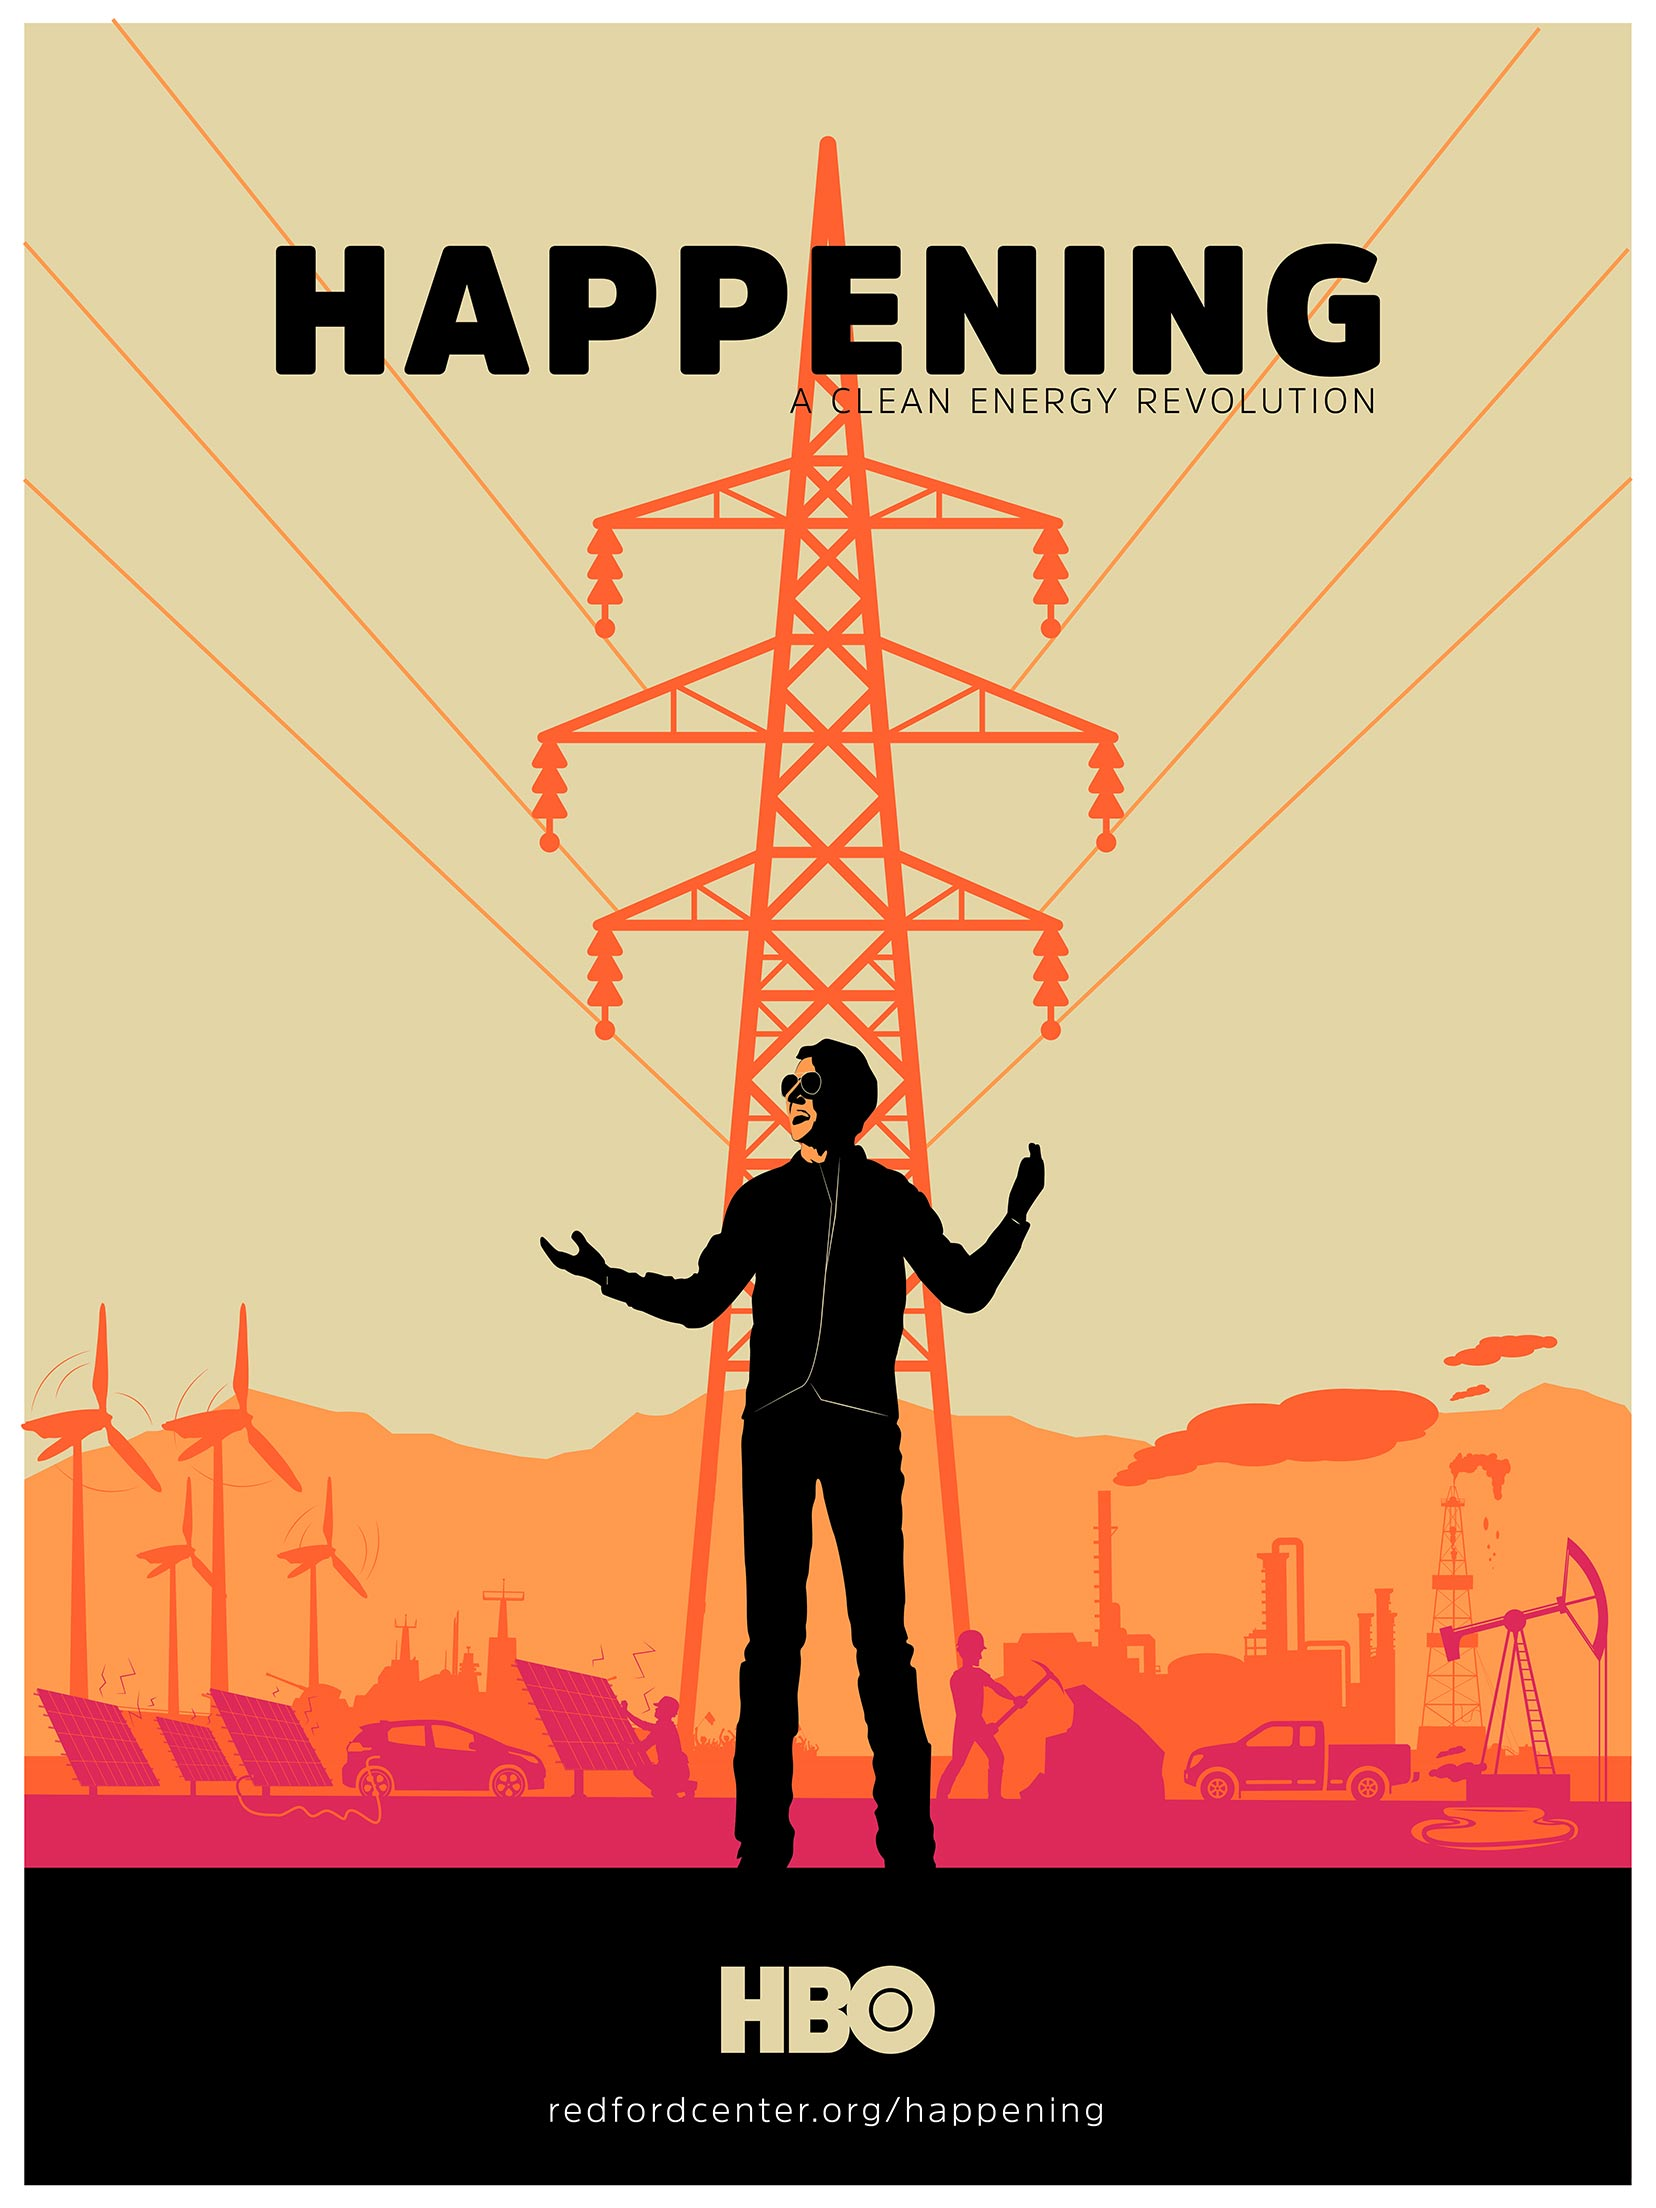 Happening: A Clean Energy Revolution Poster #1